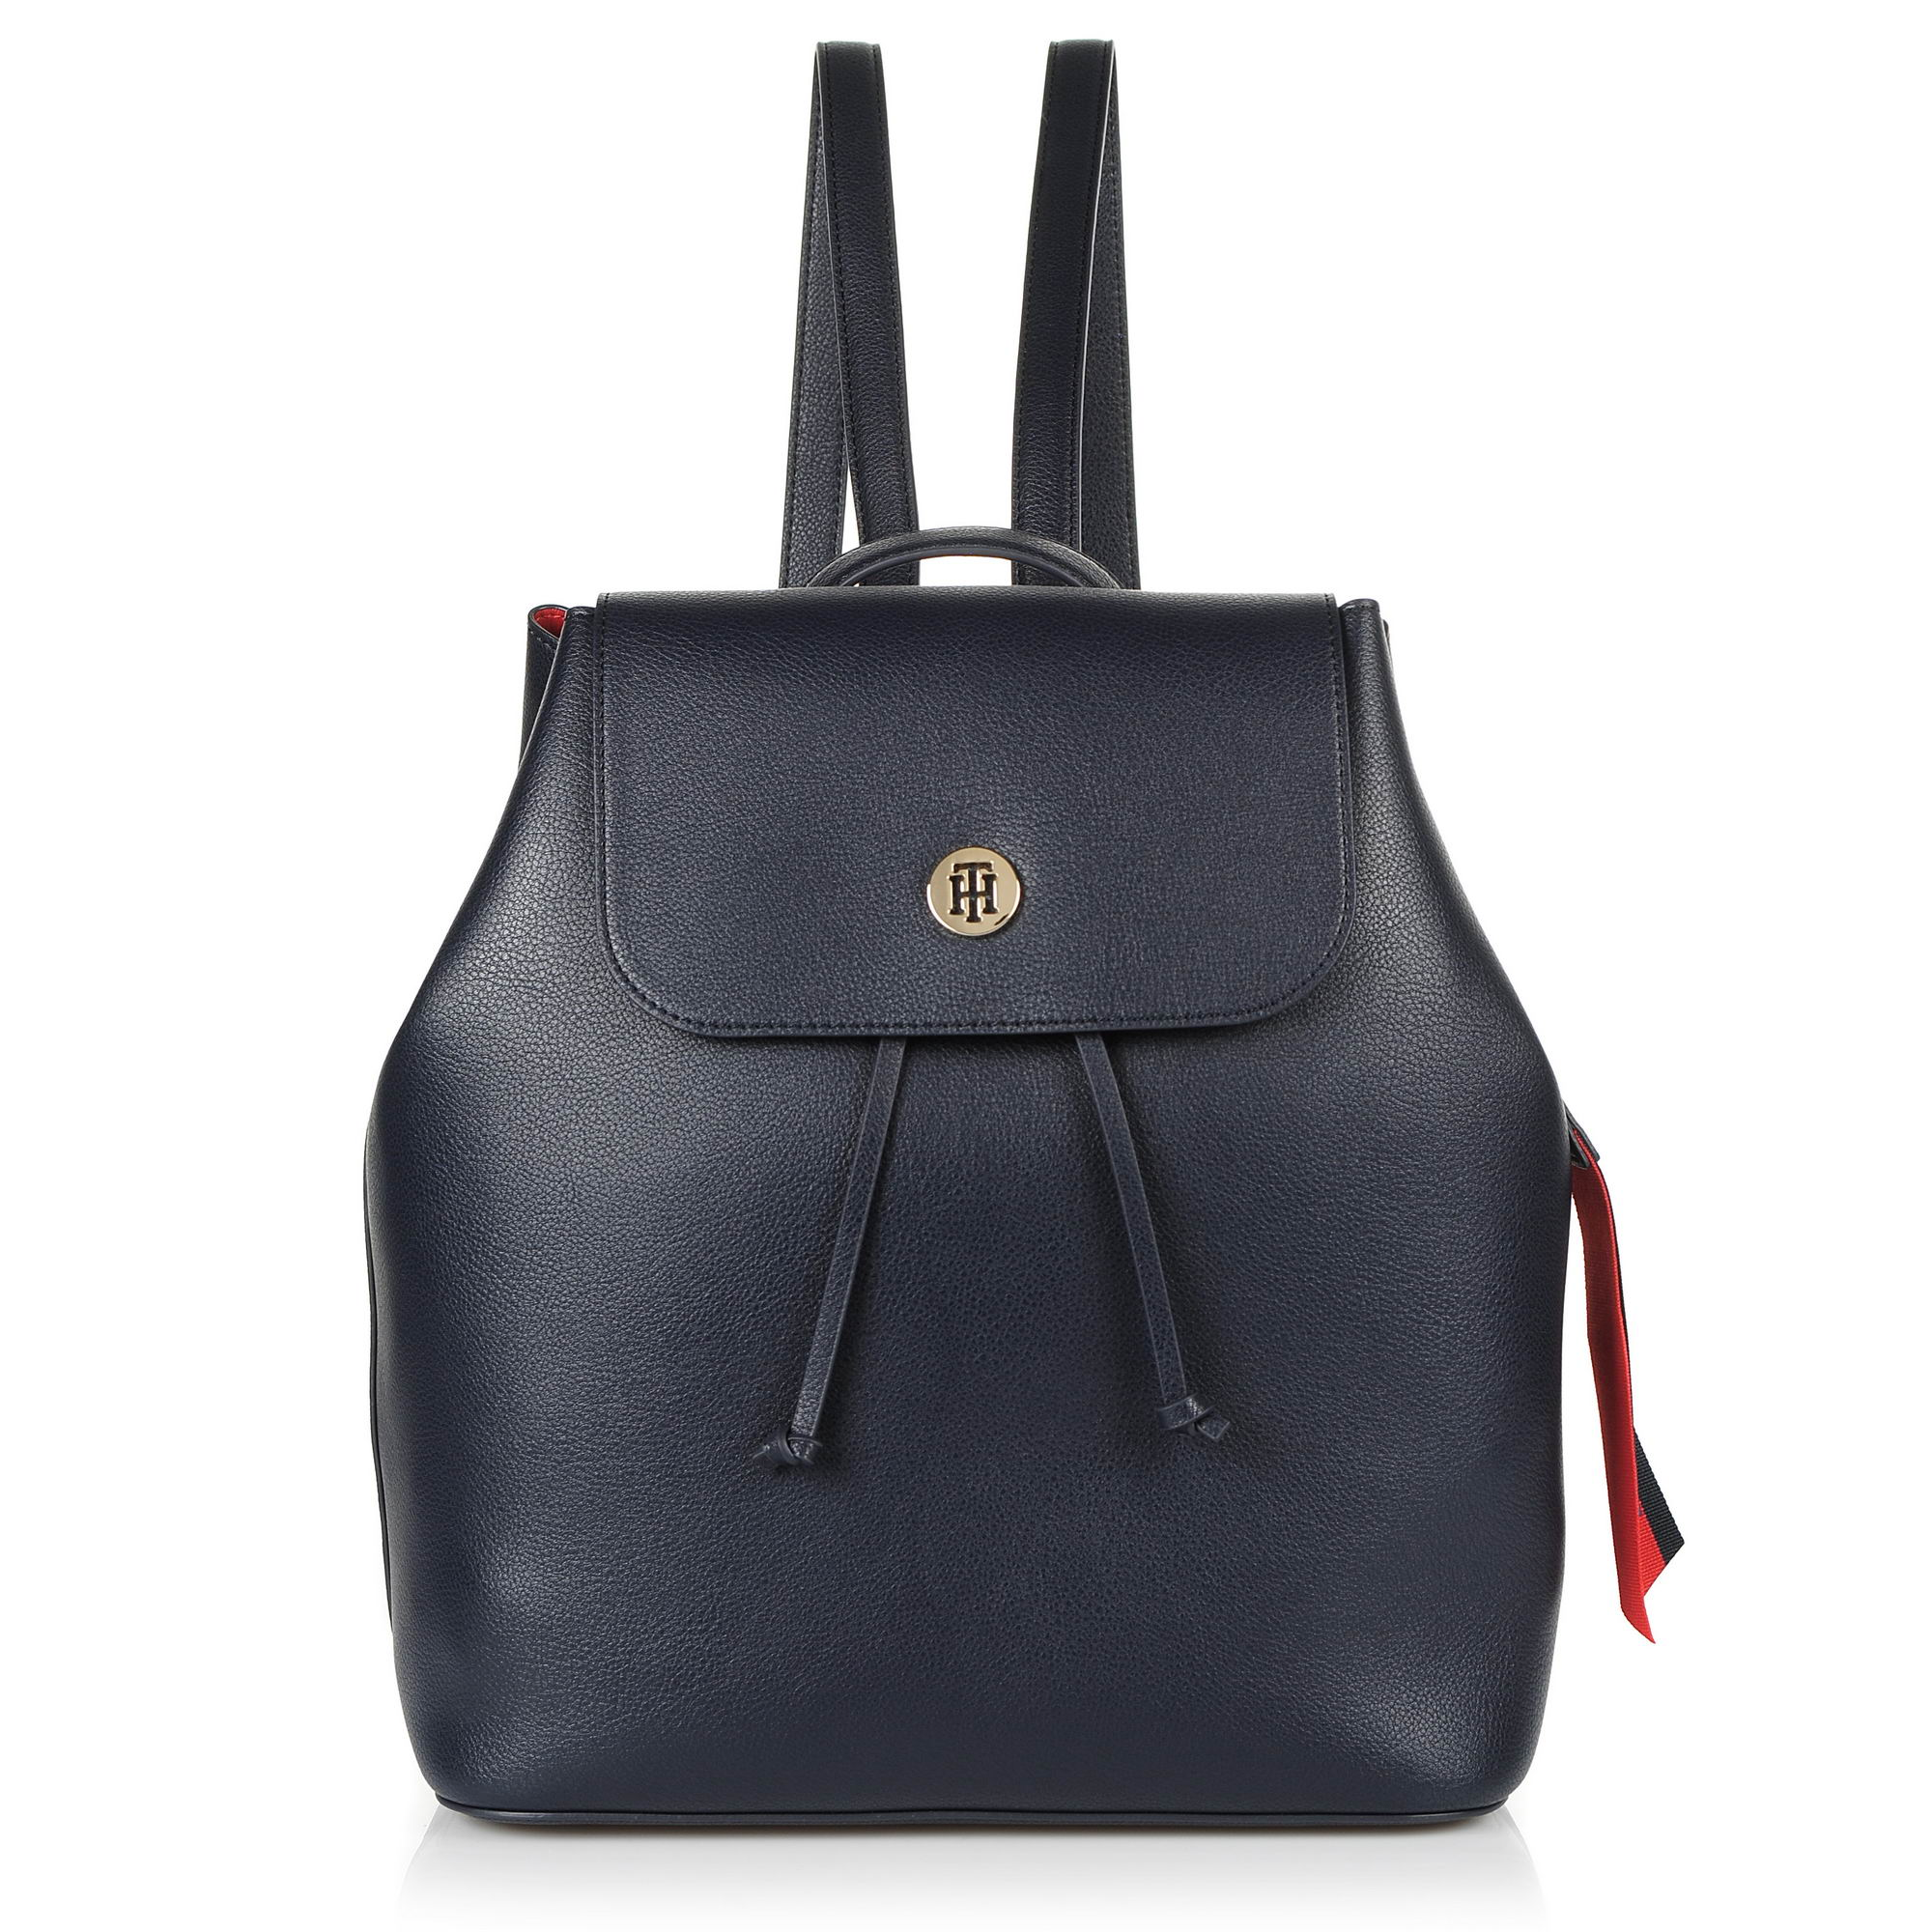 Σακίδιο Πλάτης Tommy Hilfiger Charming Tommy Backpack AW0AW05791